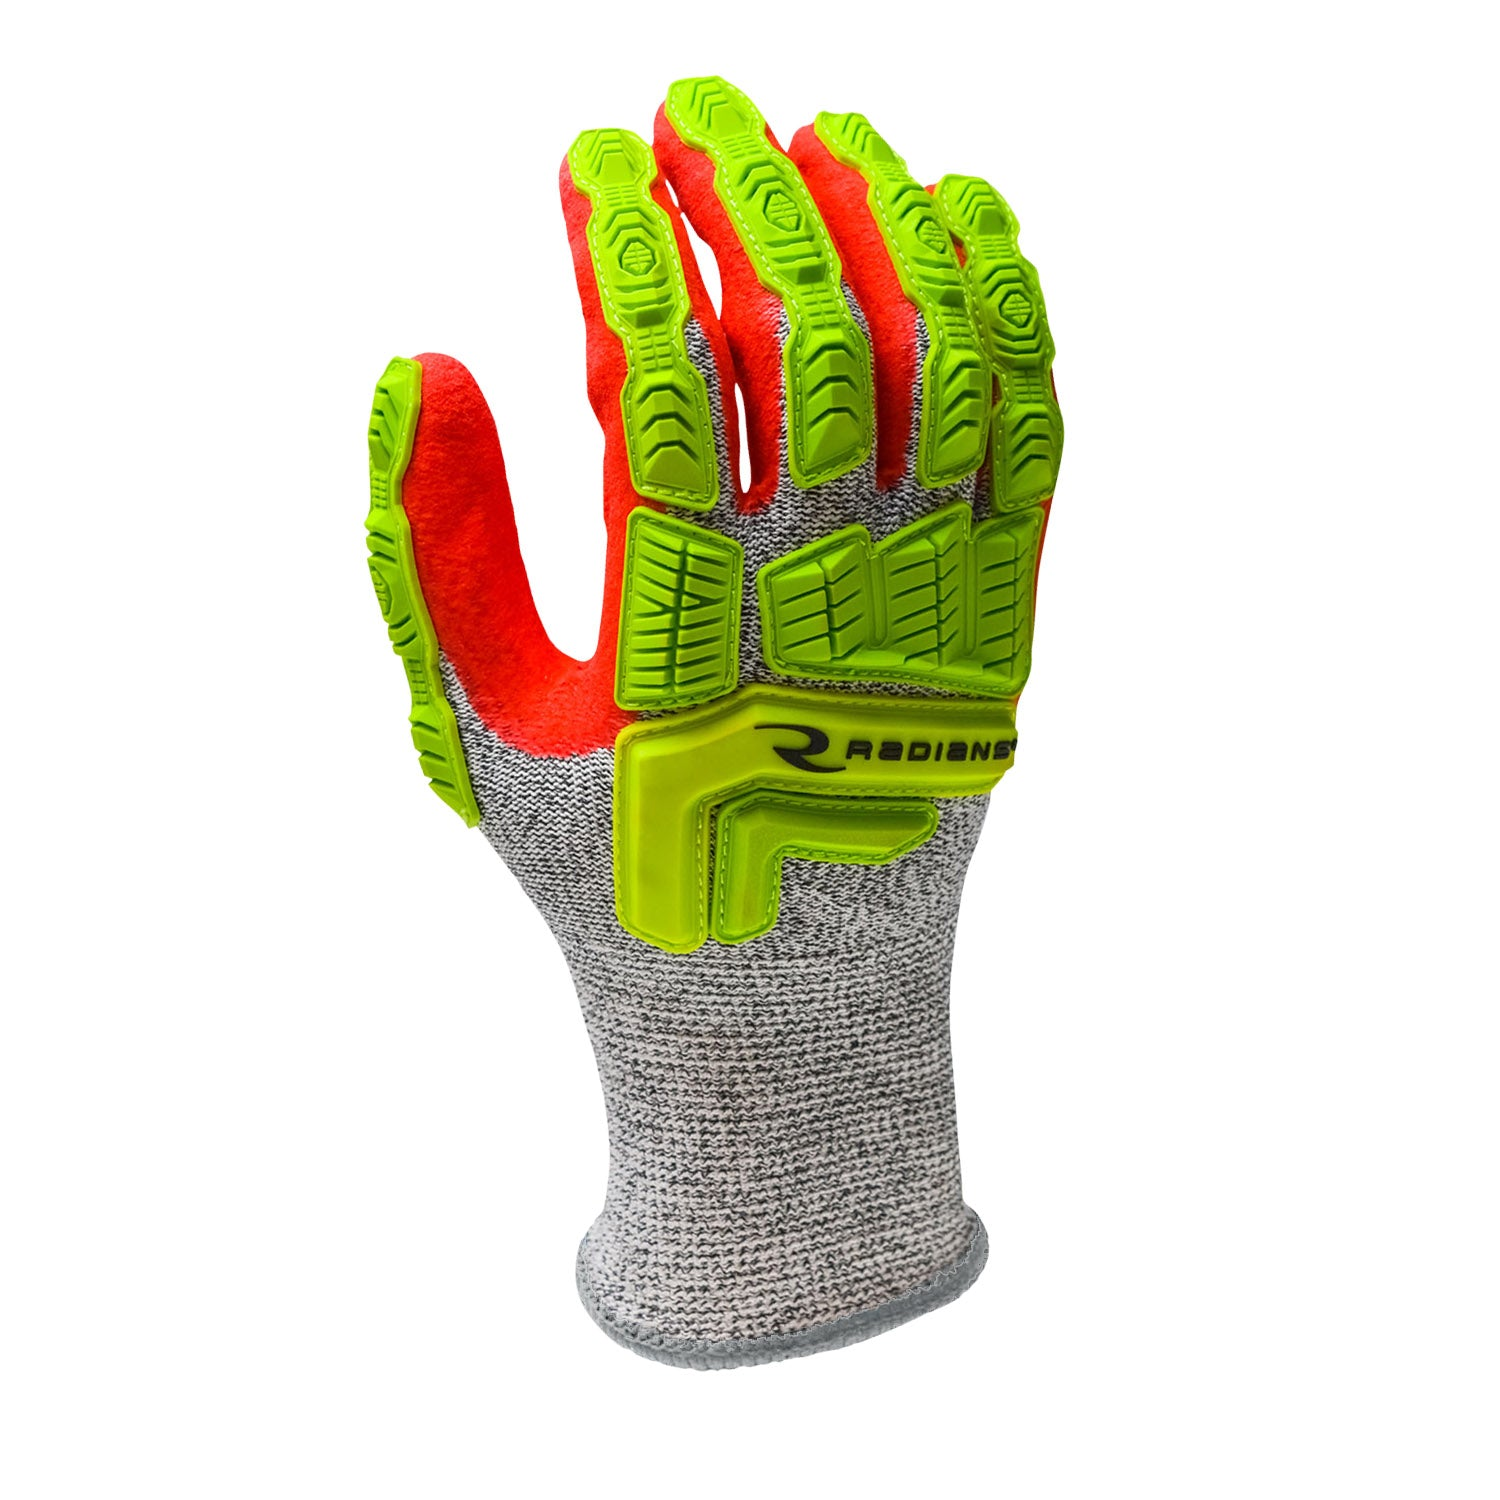 RADIANS RWG603 CUT PROTECTION LEVEL A5 SANDY FOAM NITRILE COATED GLOVE